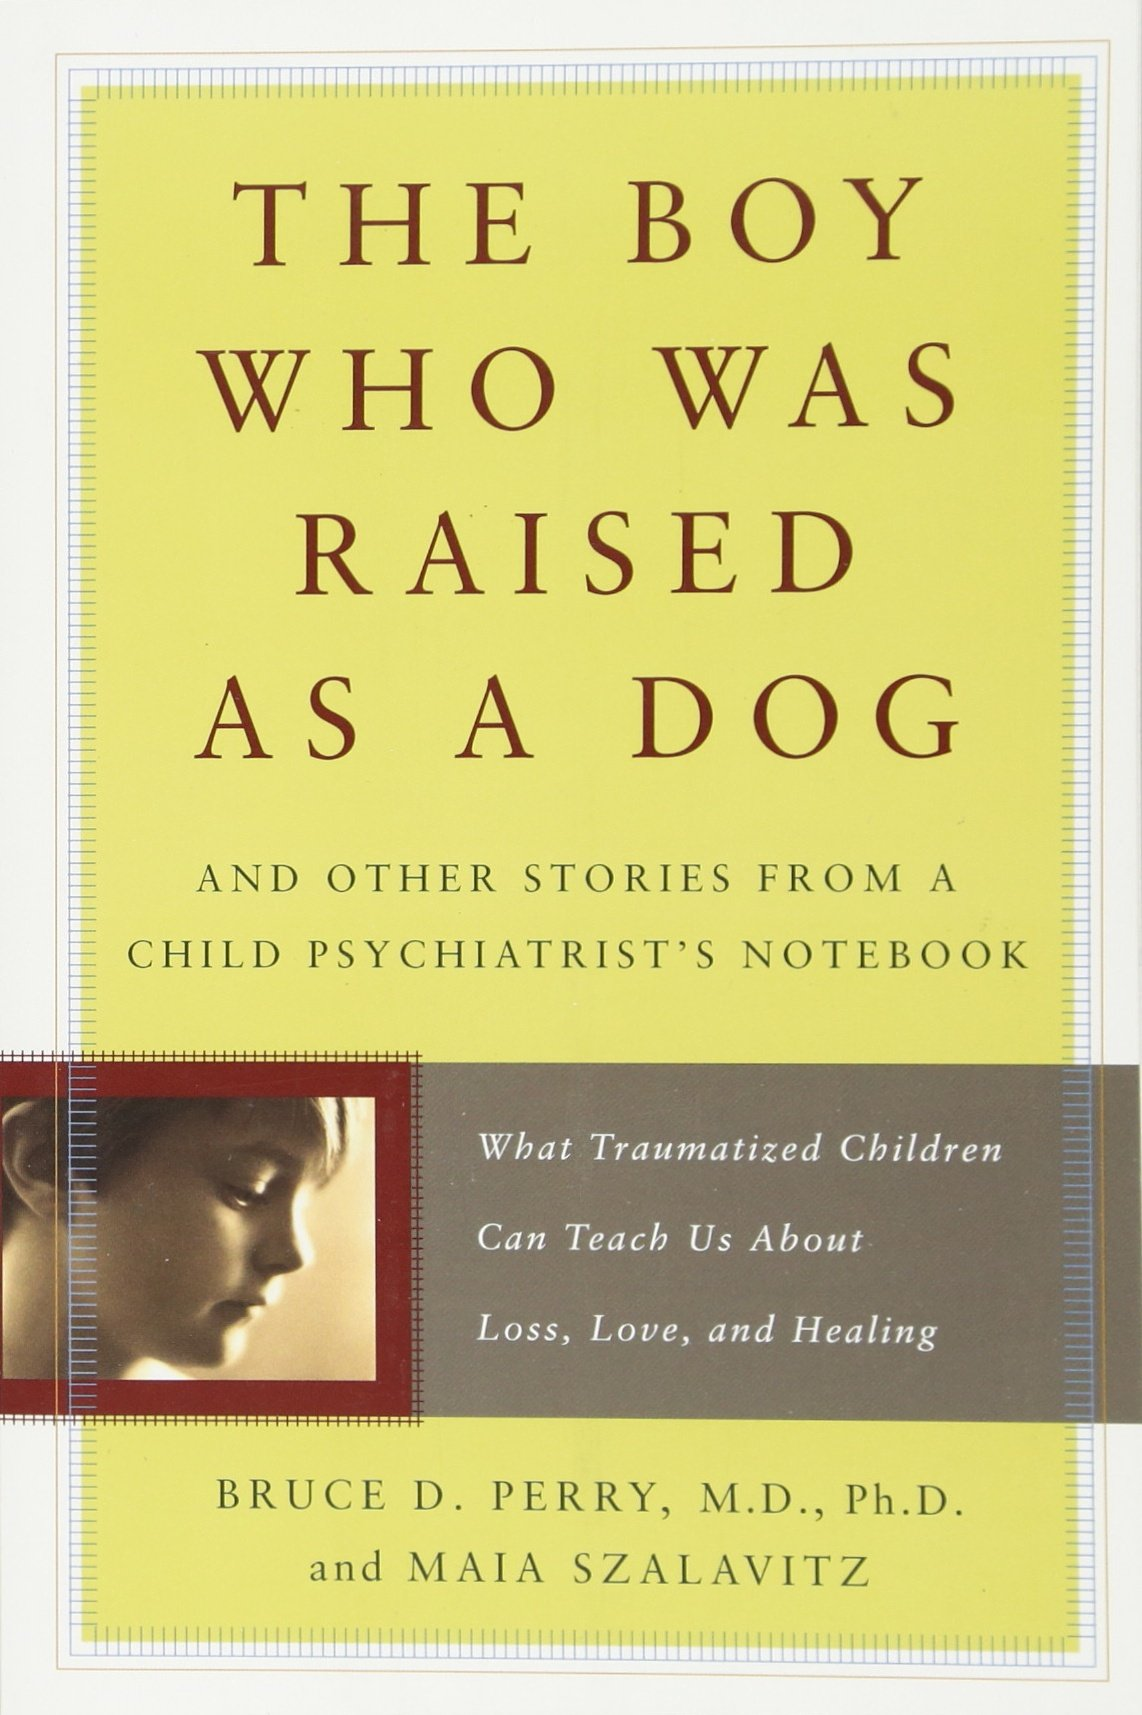 The Boy Who Was Raised as a Dog: And Other Stories from a